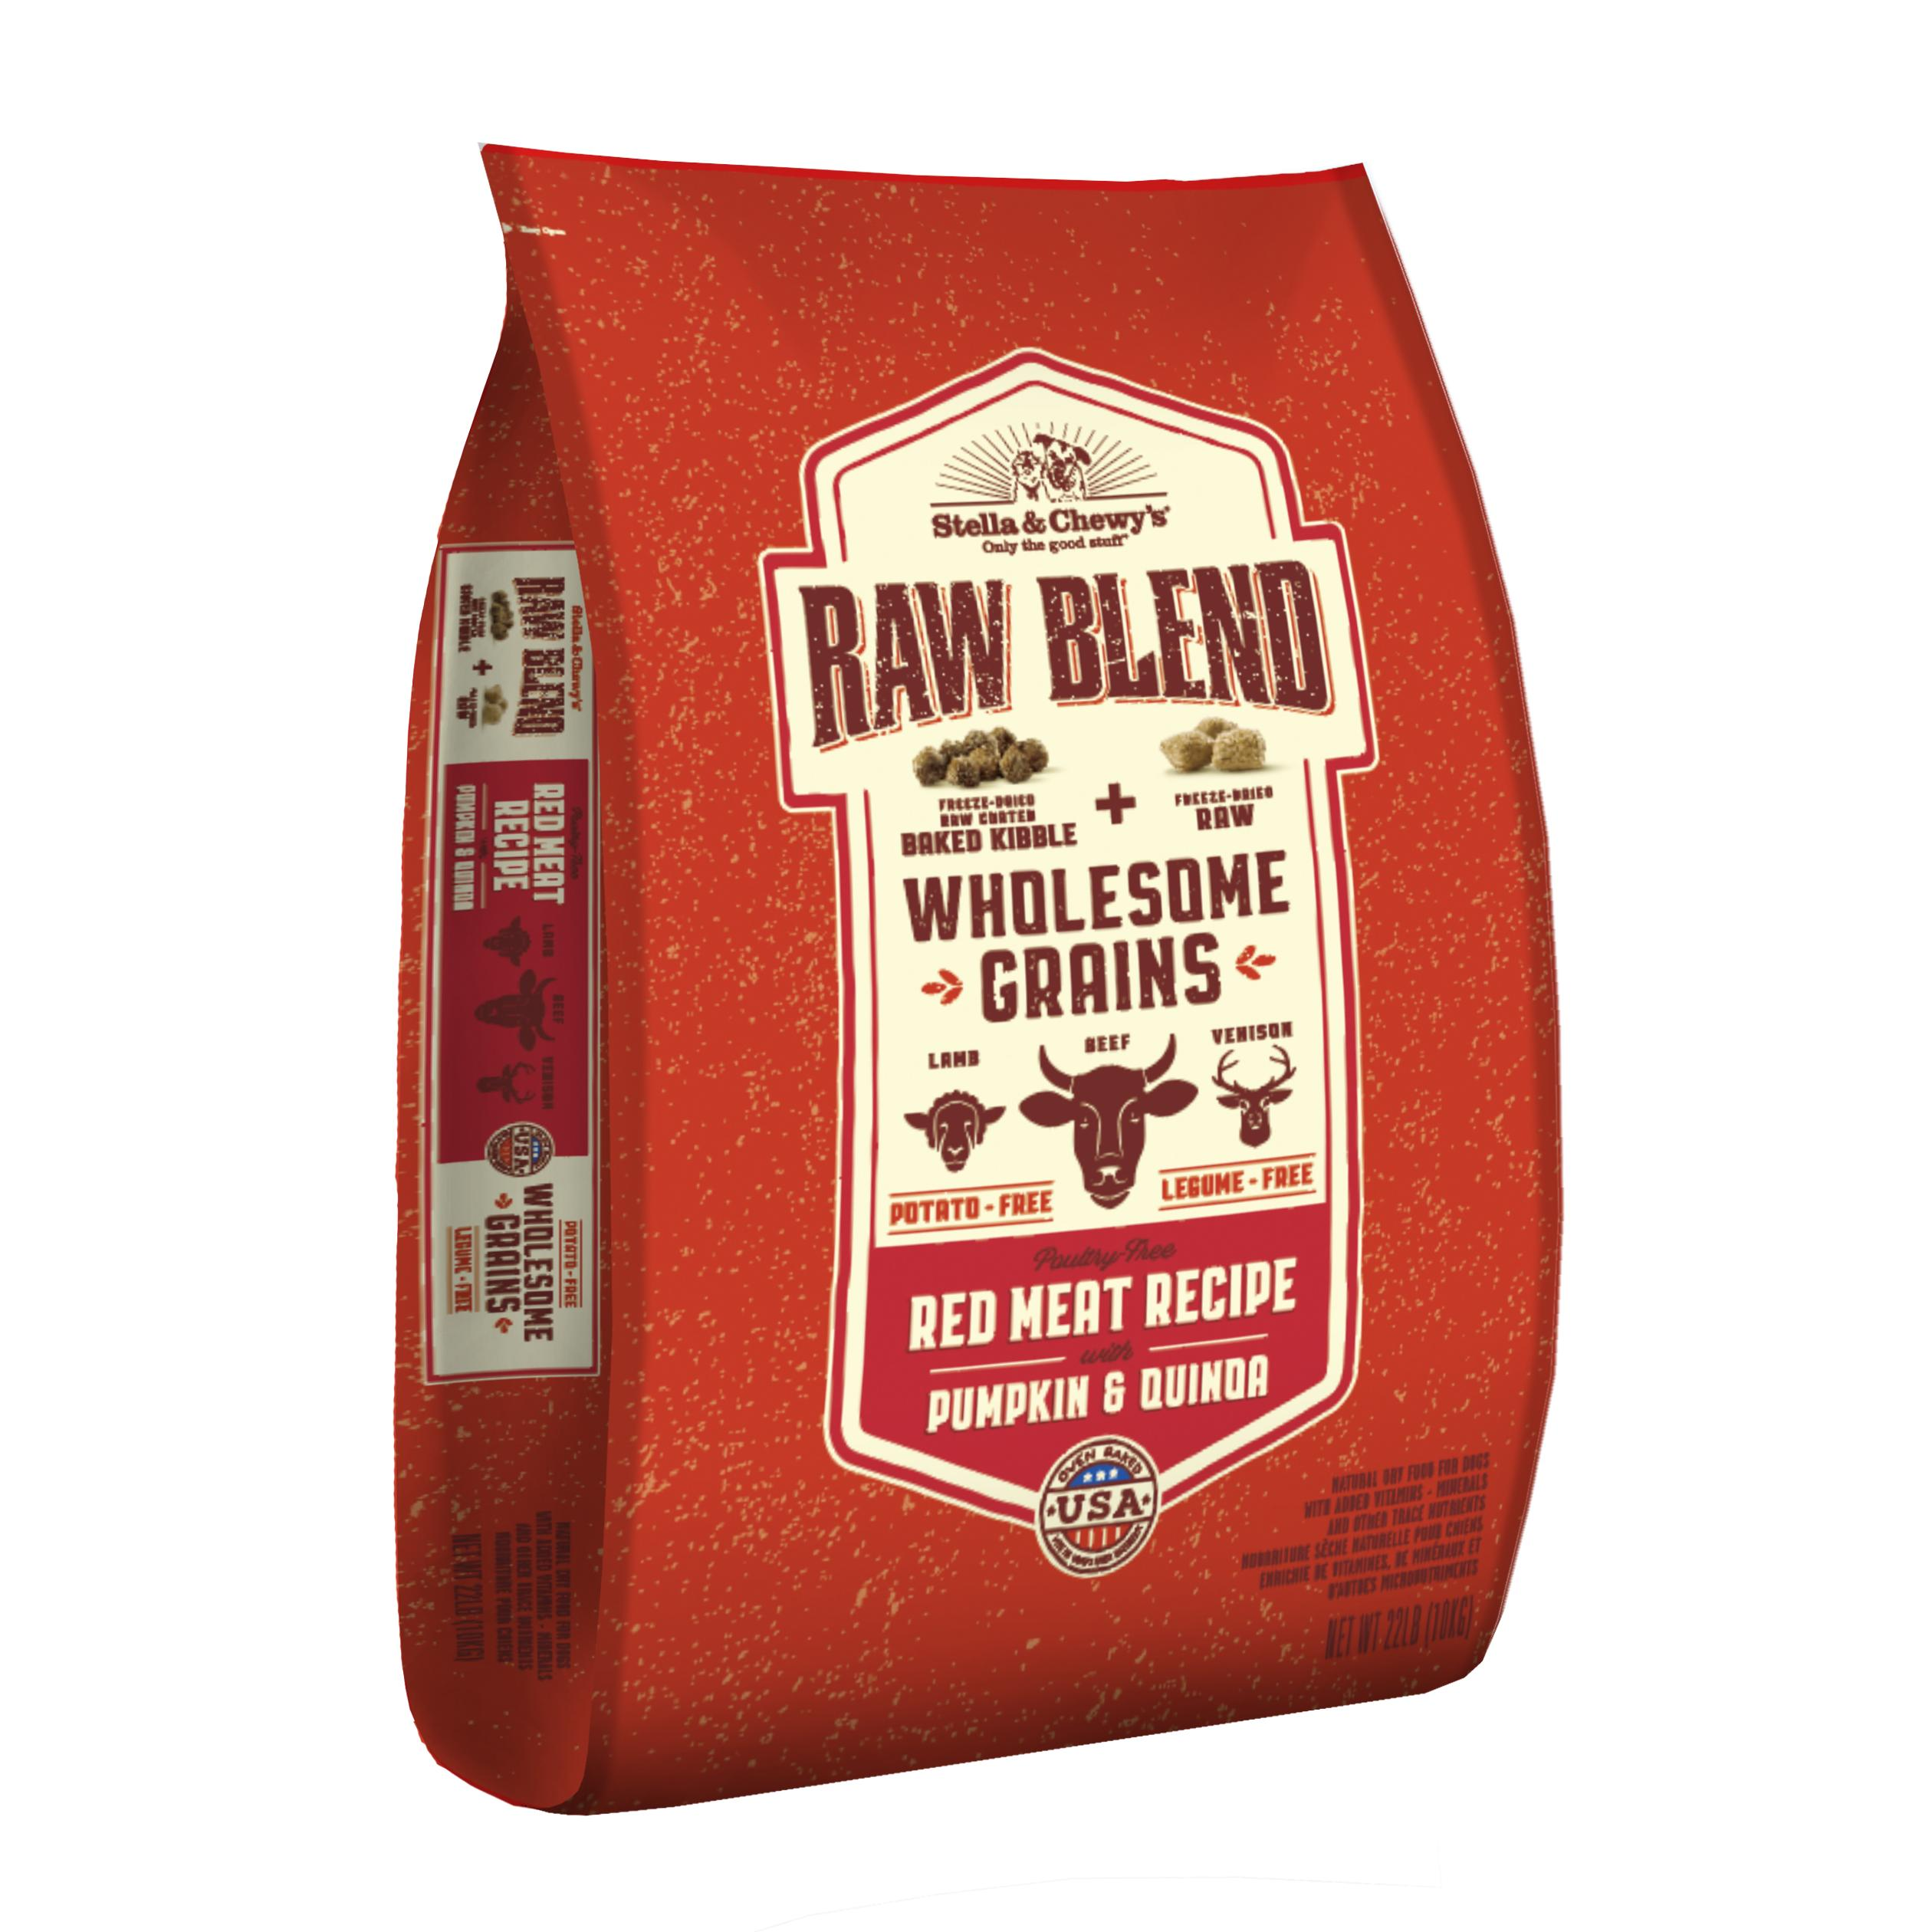 Stella & Chewy'sRaw Blend Wholesome Grains Red Meat Recipe with Pumpkin & Quinoa Dry Dog Food, 22-lb